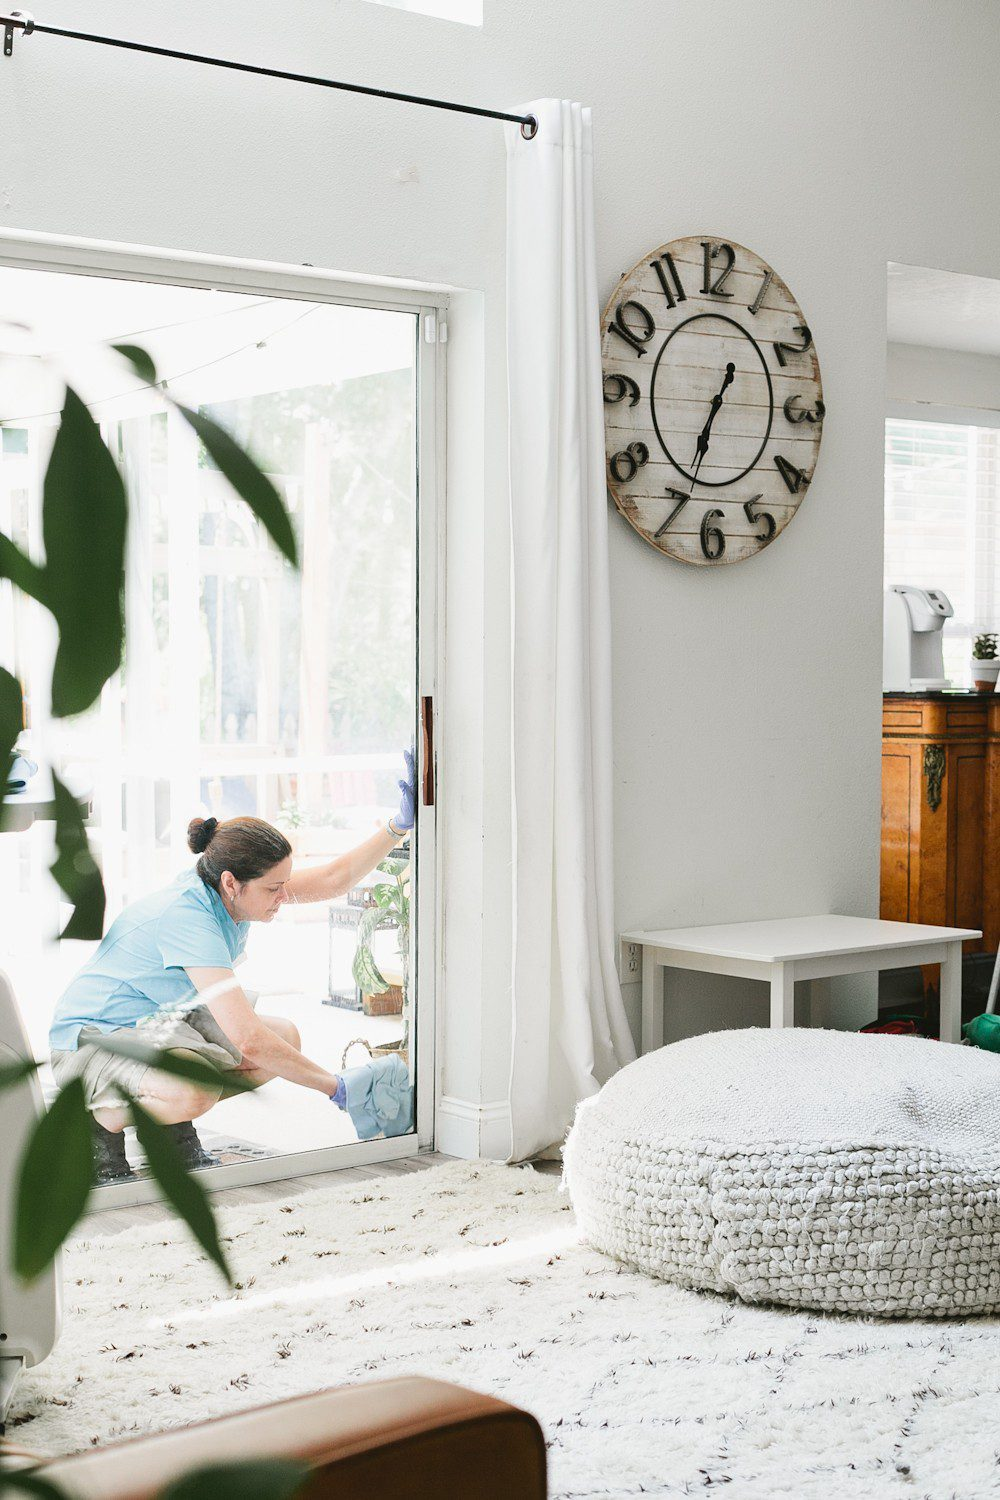 7 Forgotten Things to Clean! Cleaning Tips for Your Home